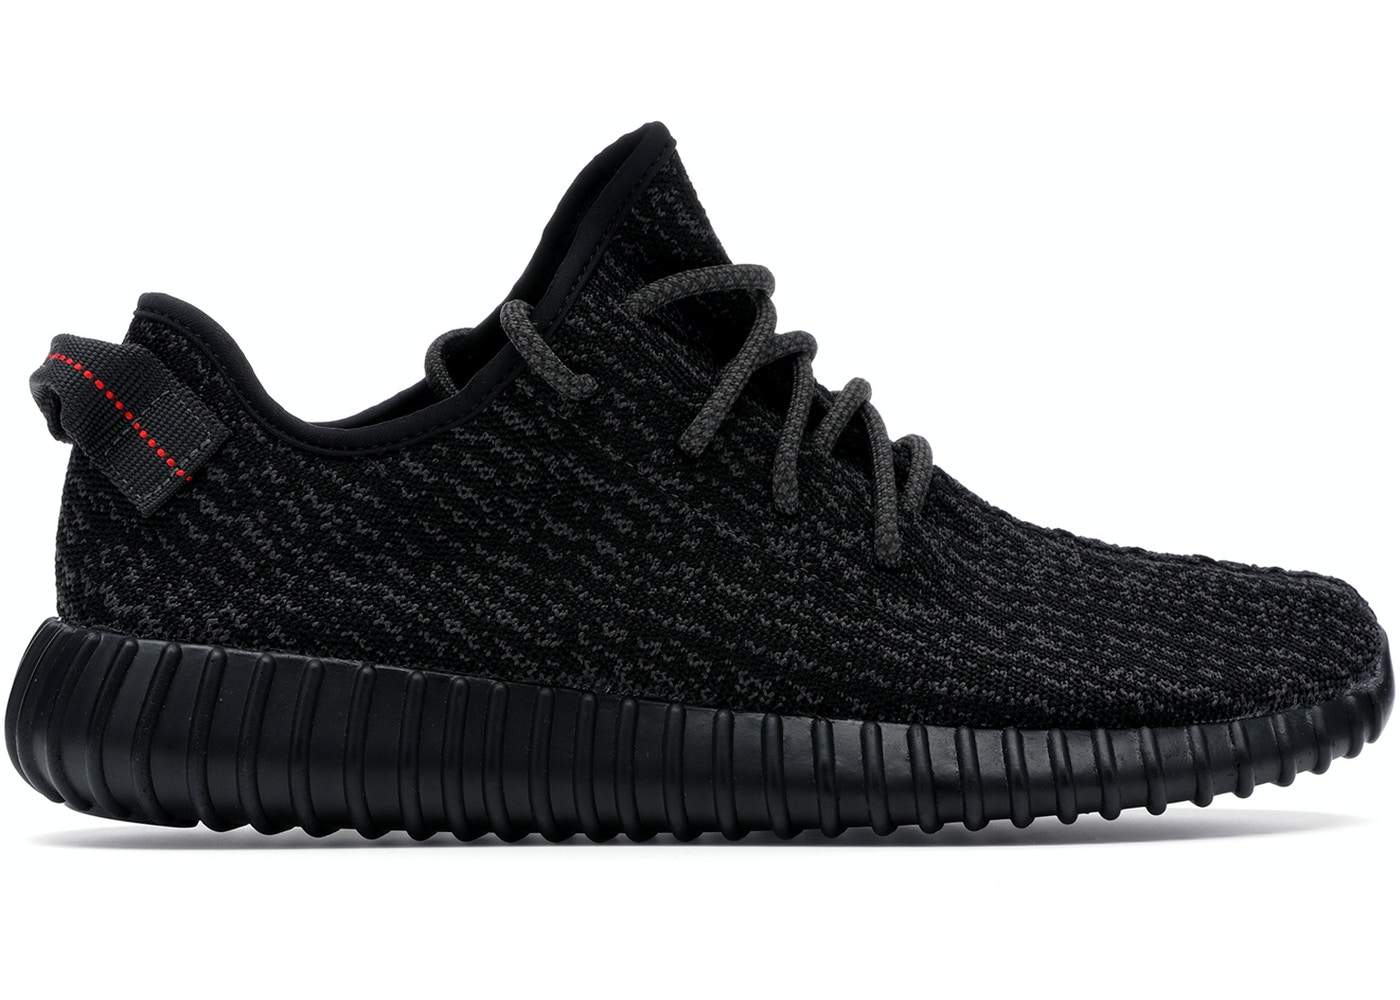 adidas Yeezy Boost 350 Pirate Black (2016) - BB5350 947cdba42